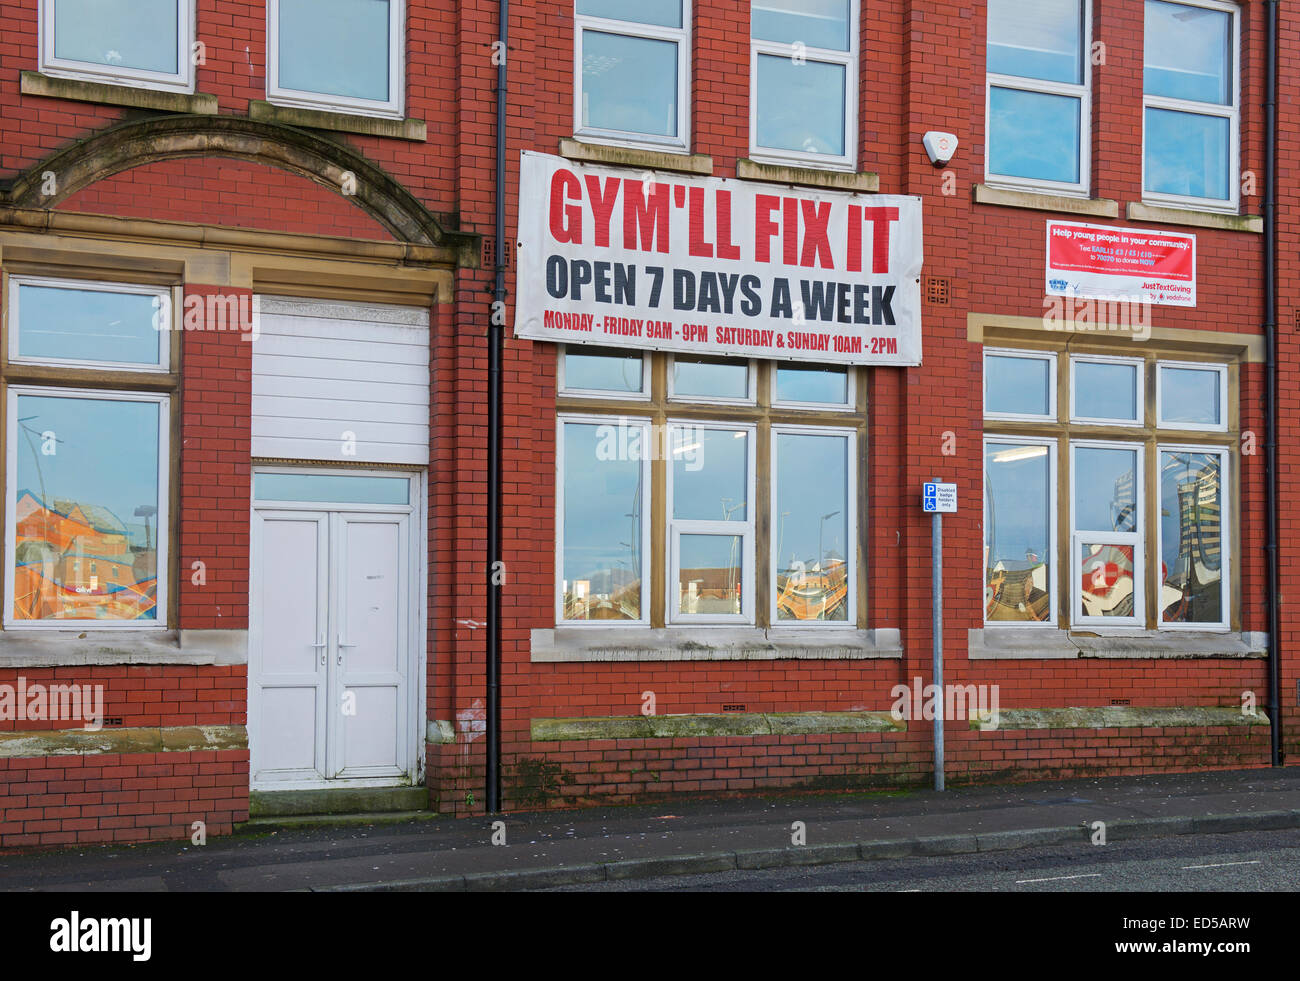 Gym building with sign - Gym'll Fix It - in Rochdale, Lancashire, England UK - Stock Image